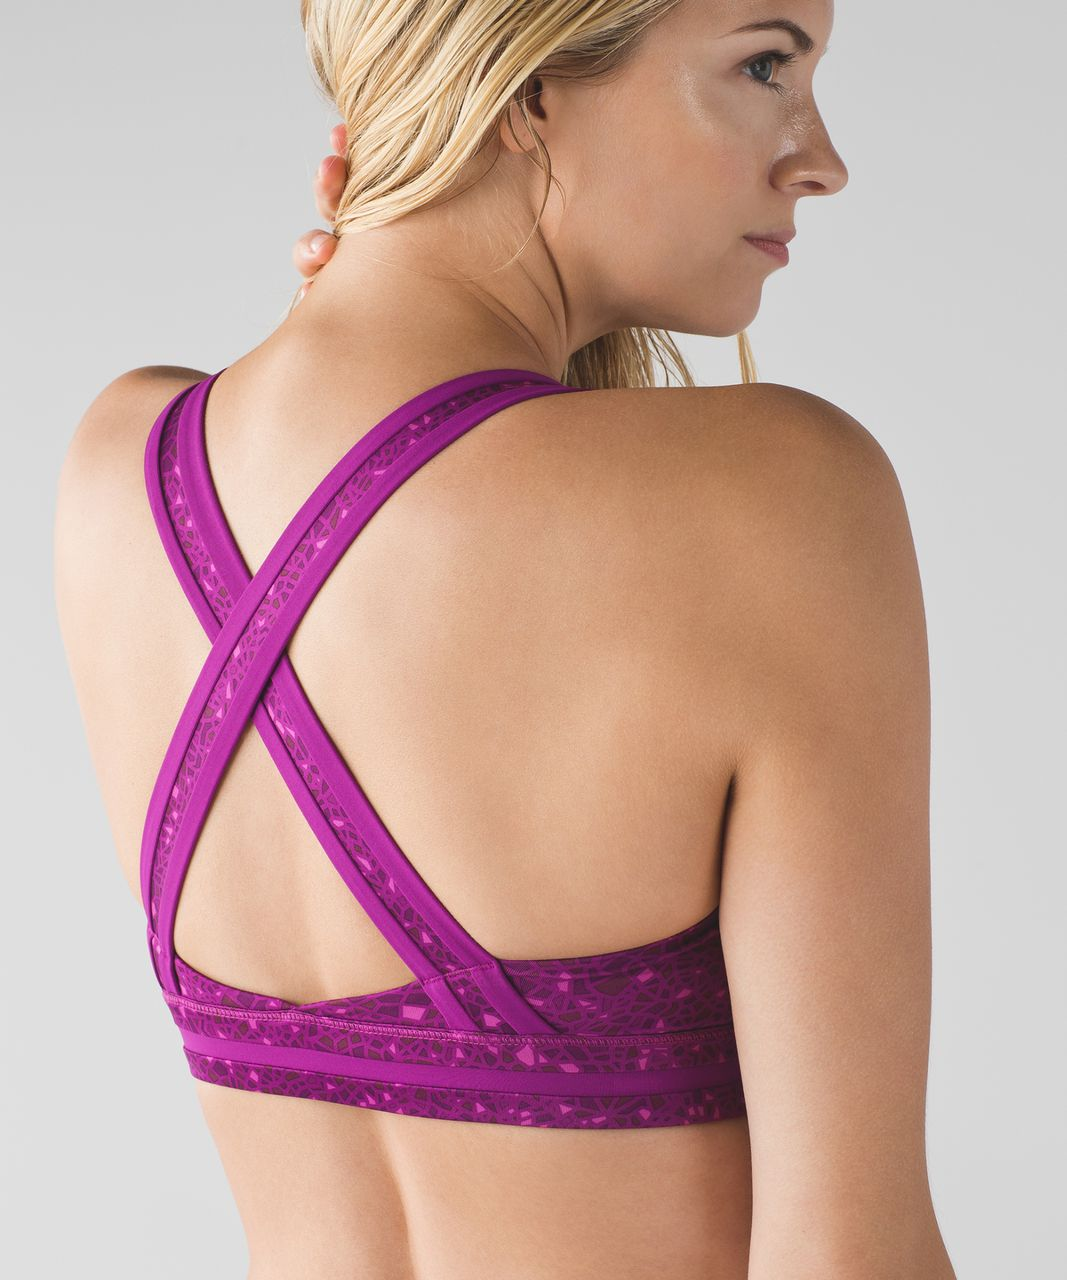 Lululemon Rack Pack Bra - Paradise Geo Regal Plum Multi / Regal Plum